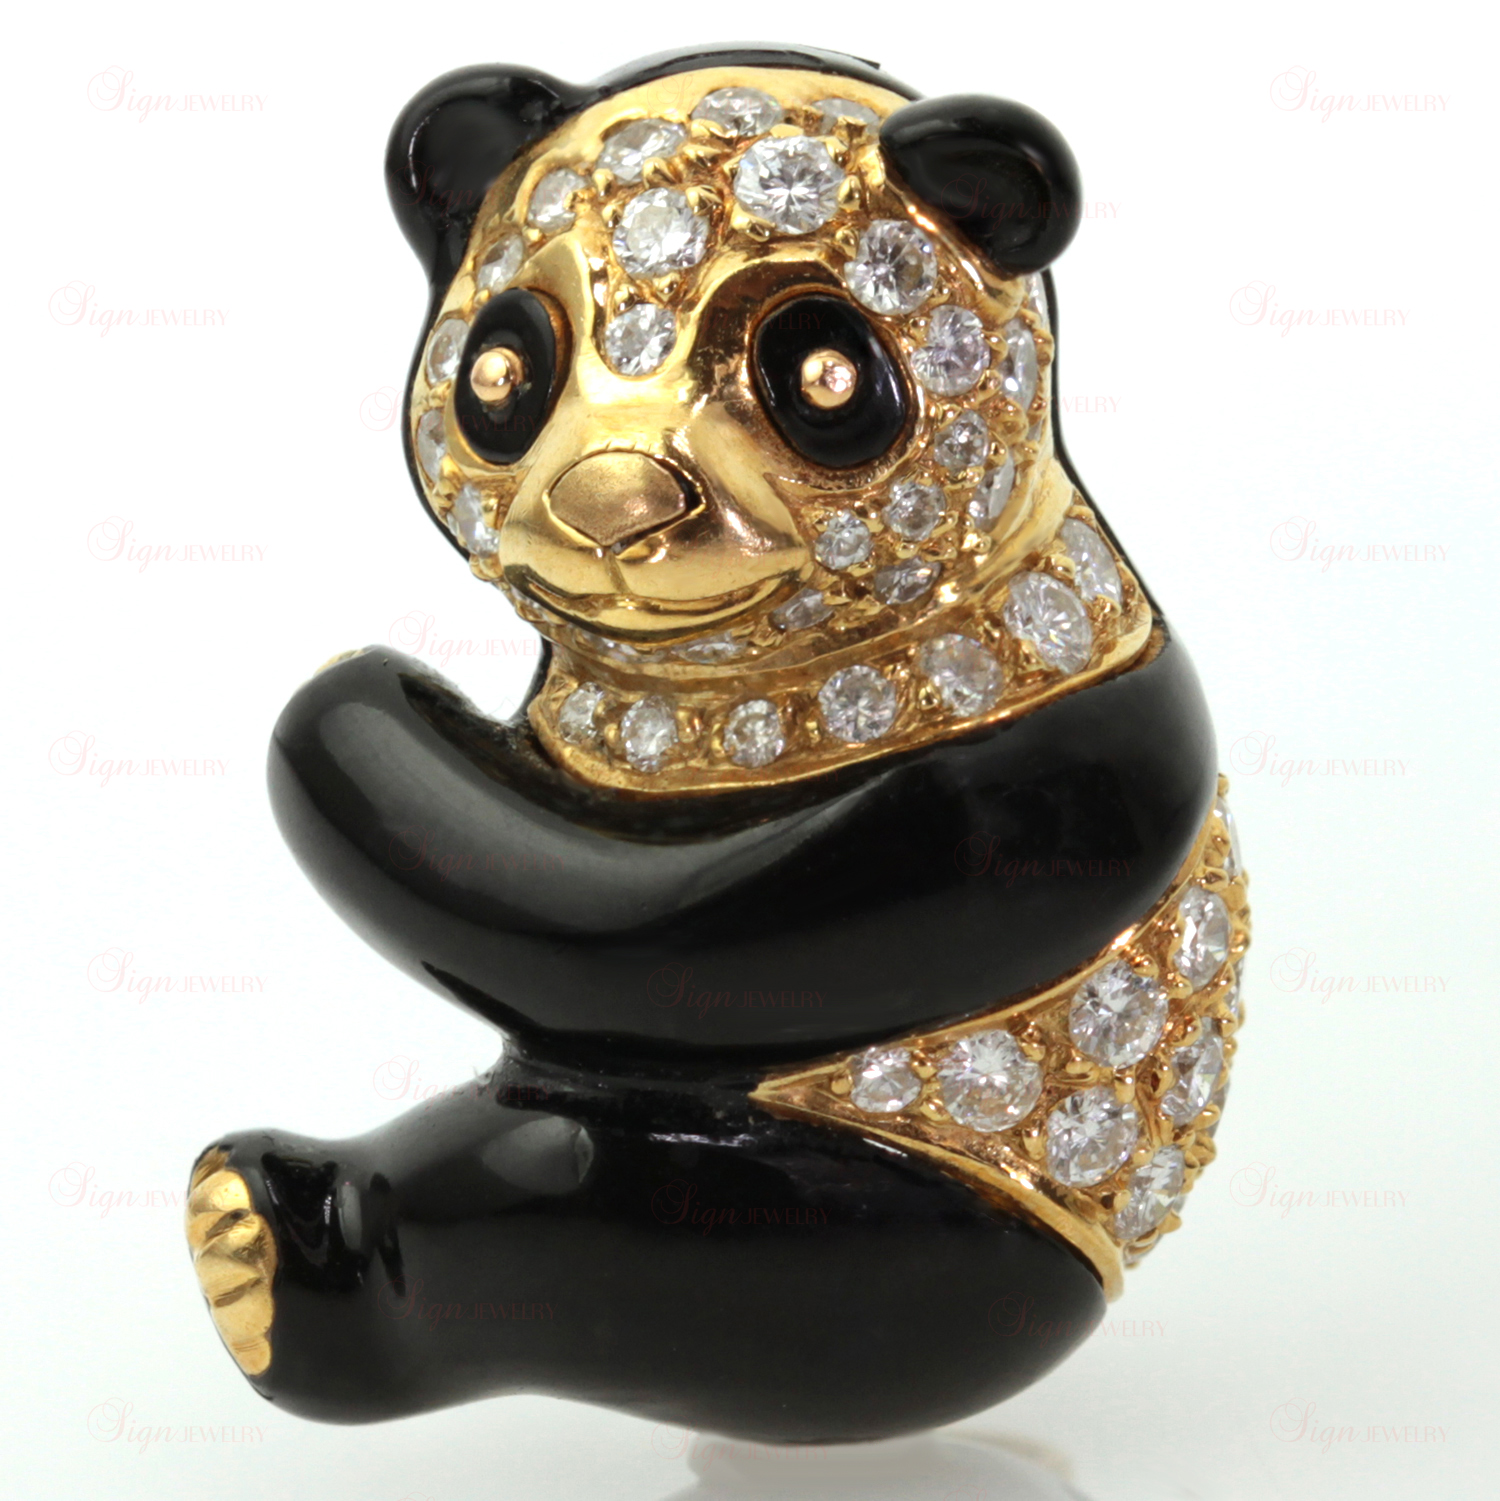 VAN CLEEF & ARPELS Diamond Black Enamel 18k Yellow Gold Panda Bear Pin Brooch